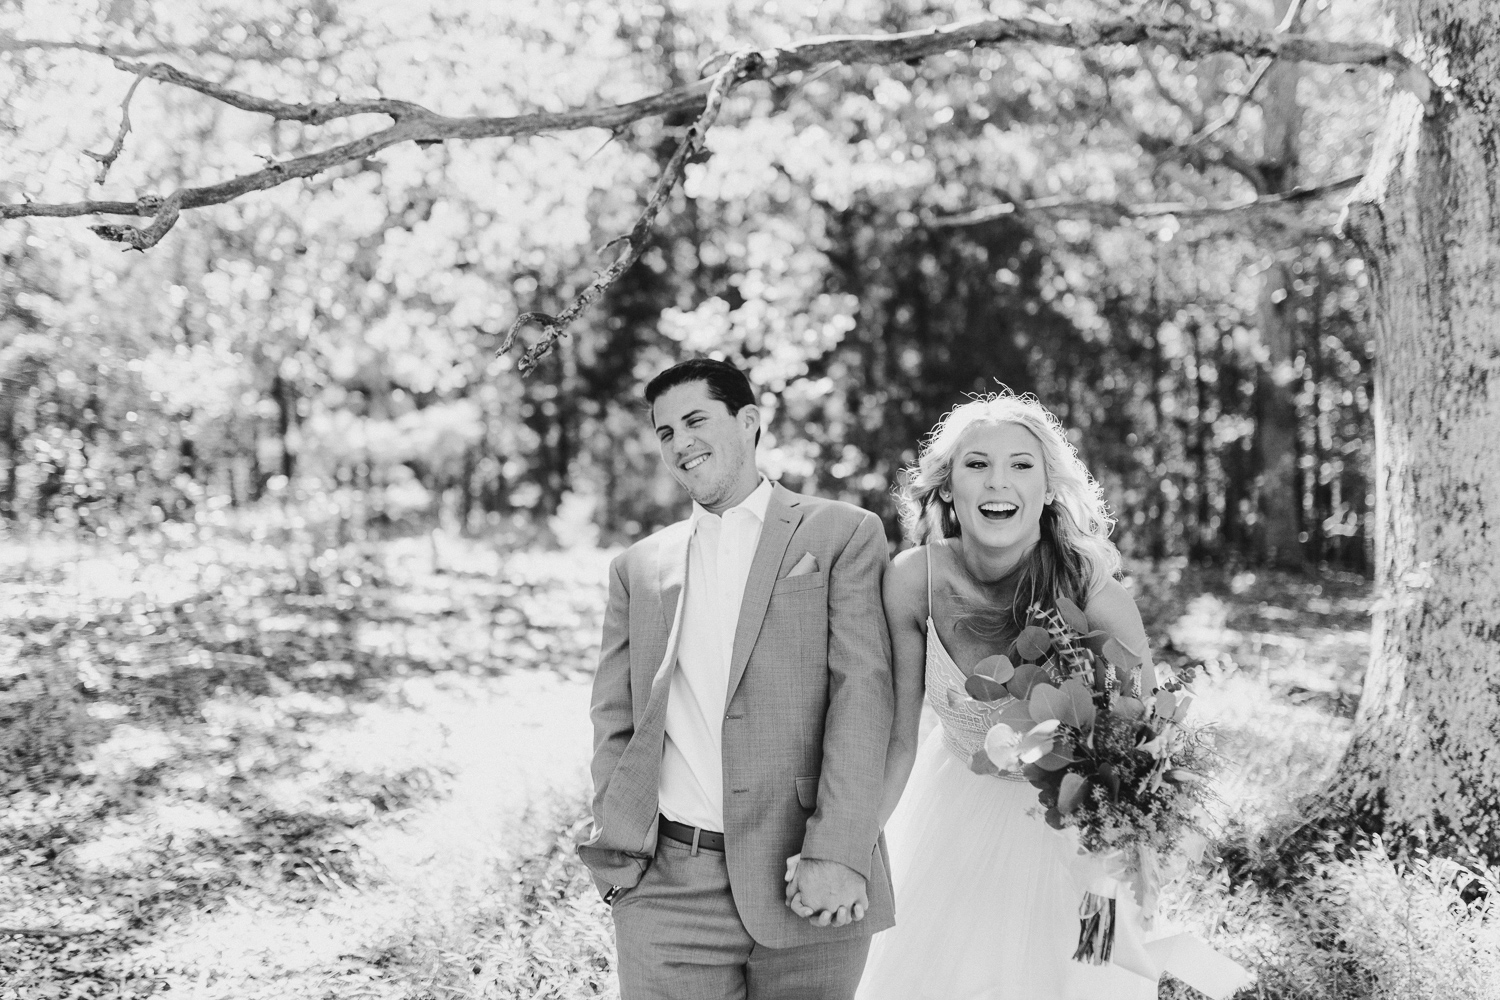 northcarolinaweddingphotographer-35